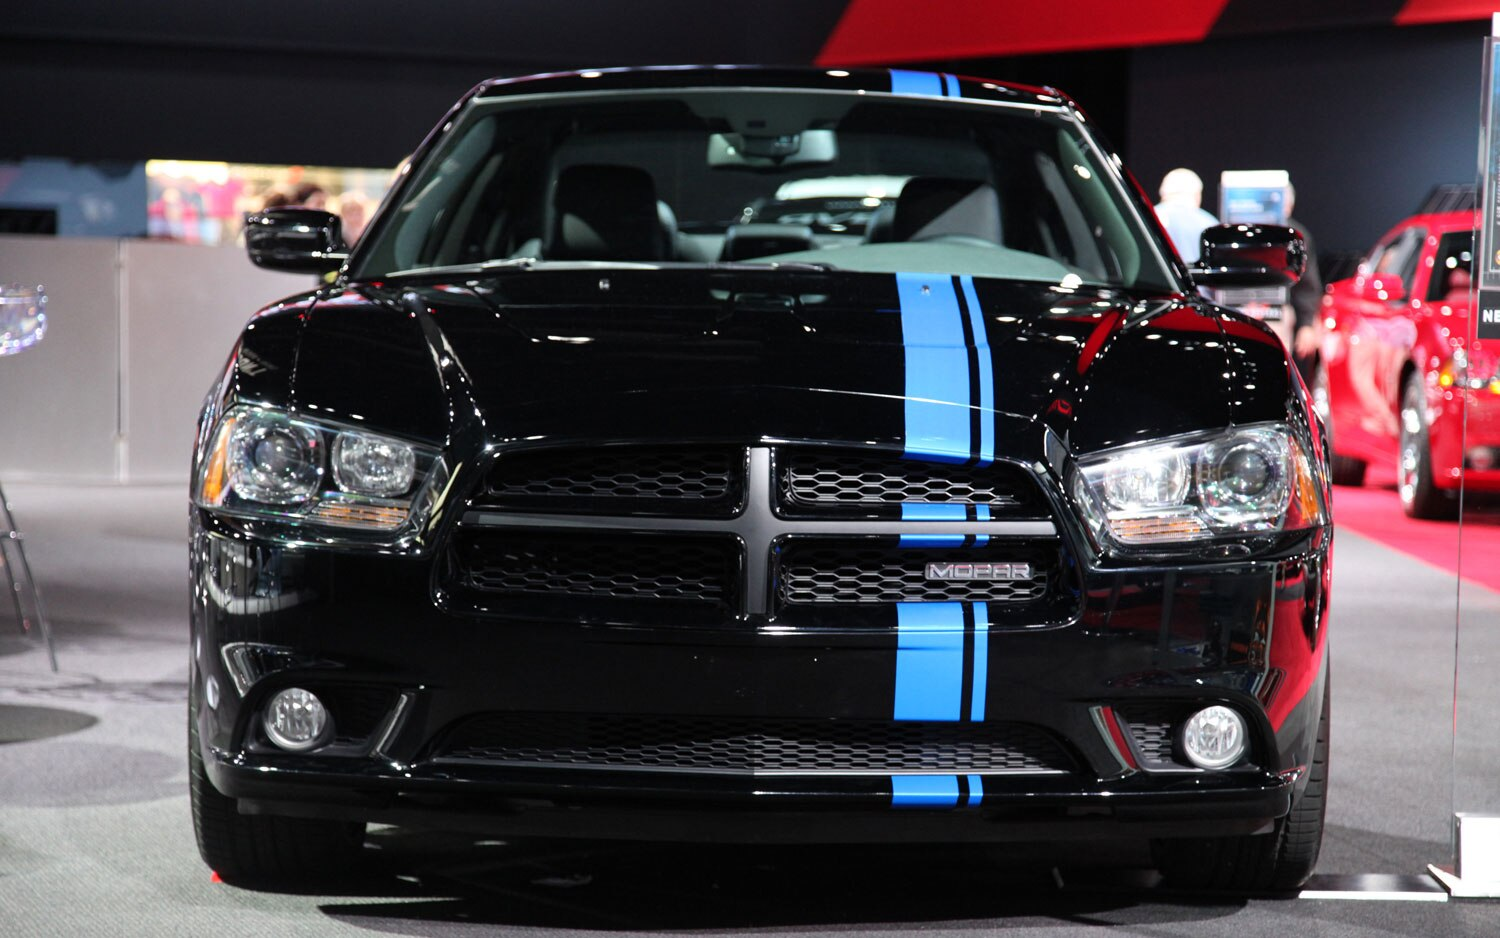 2011 Dodge Charger Mopar Special Edition Front View1